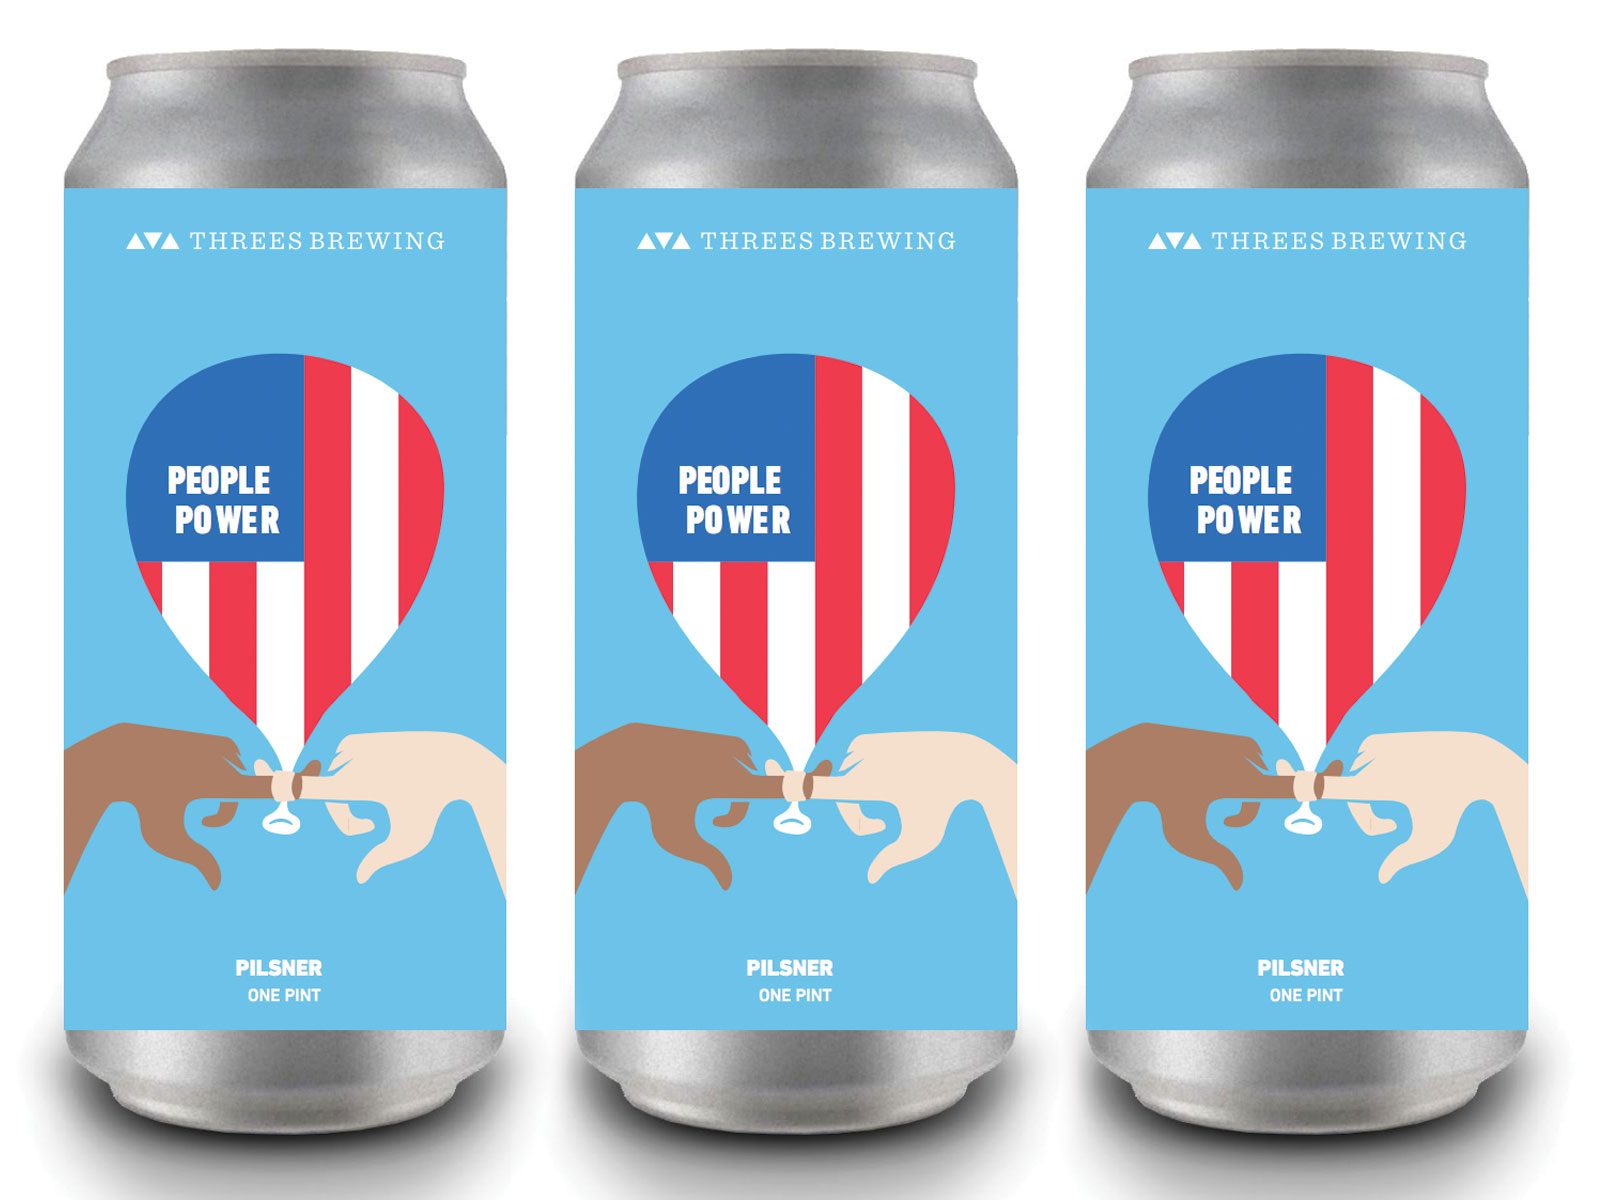 aclu-beer-people-power-FT-BLOG0618.jpg